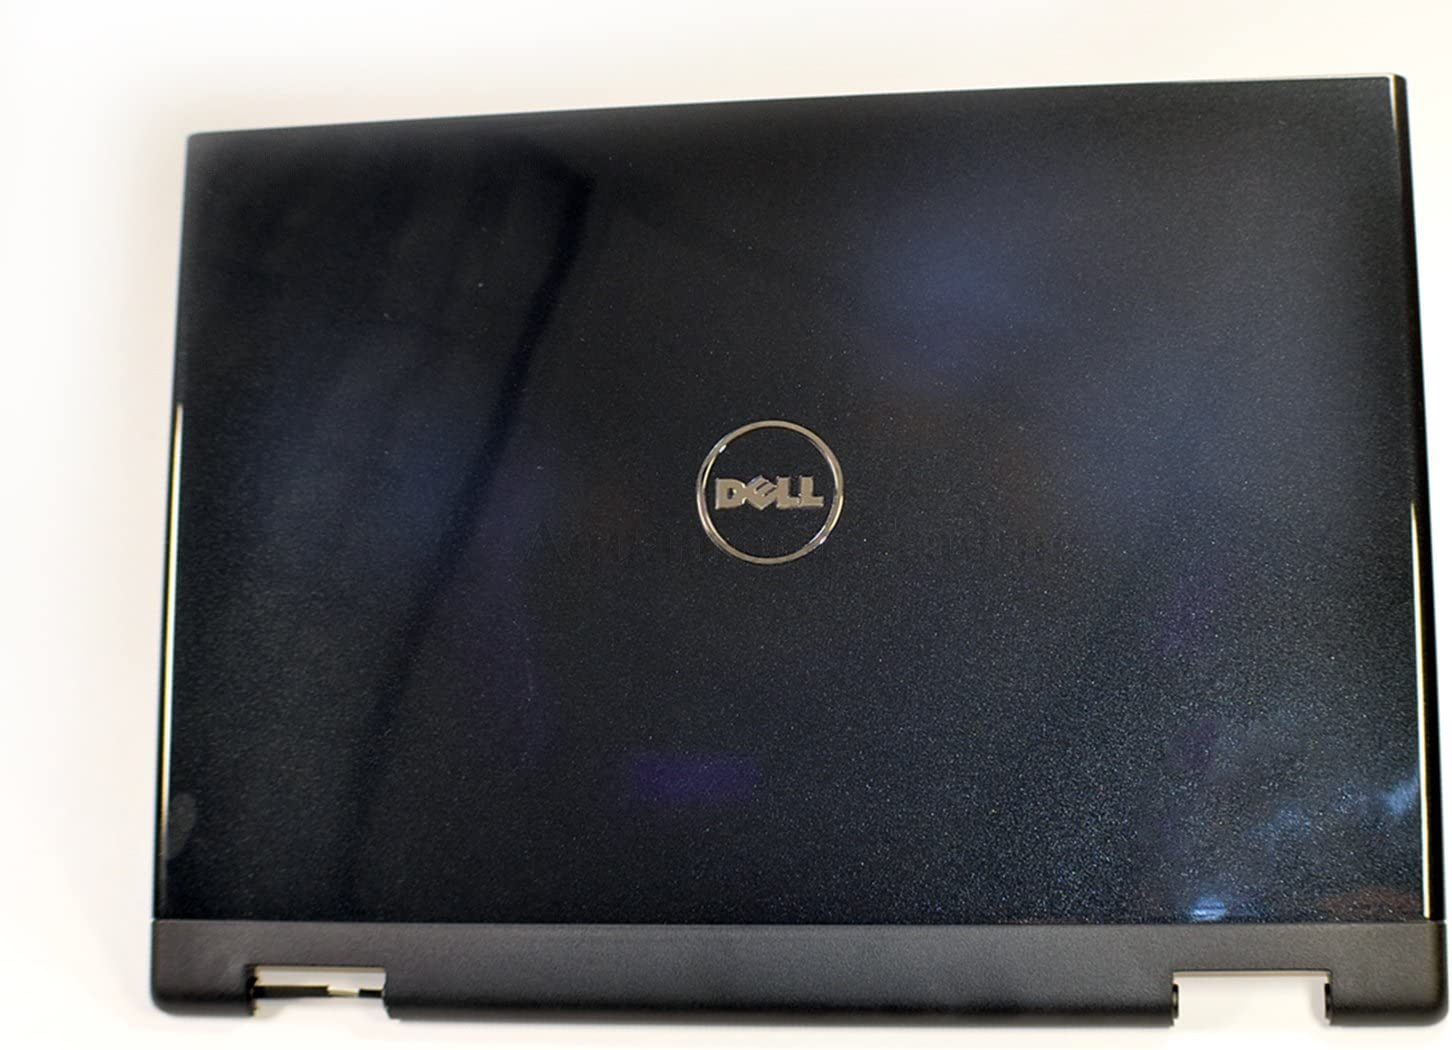 F848N Dell Vostro 1520 15.4 LCD Back Top Cover Lid Plastic Assembly Grade B F848N